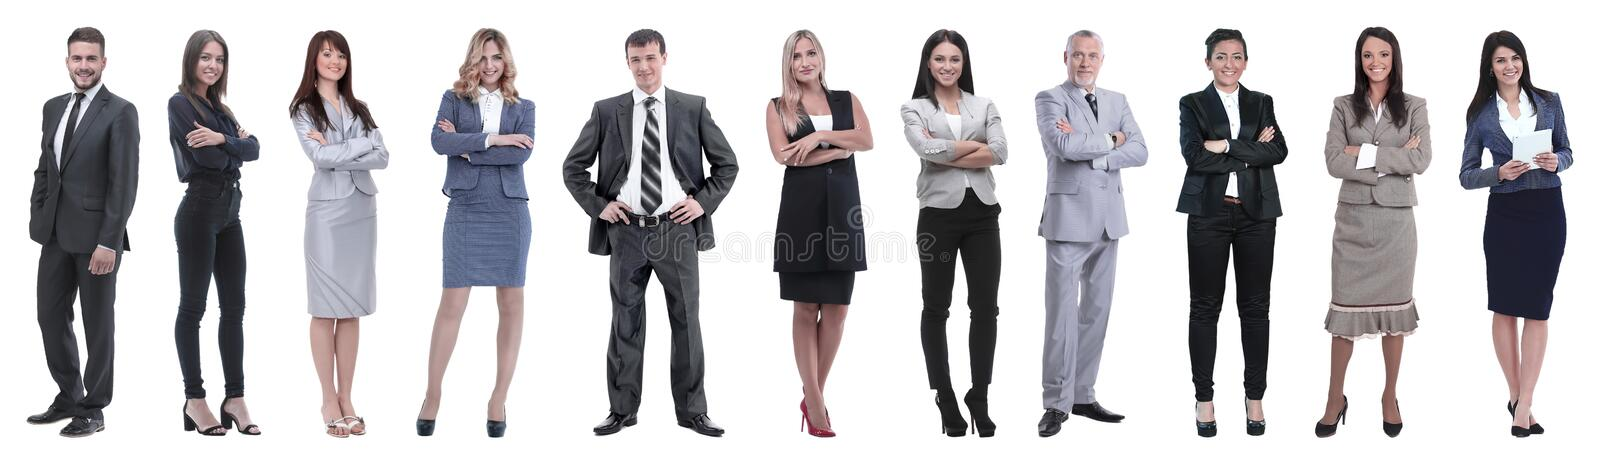 Large group of business people. Isolated over white. royalty free stock photo